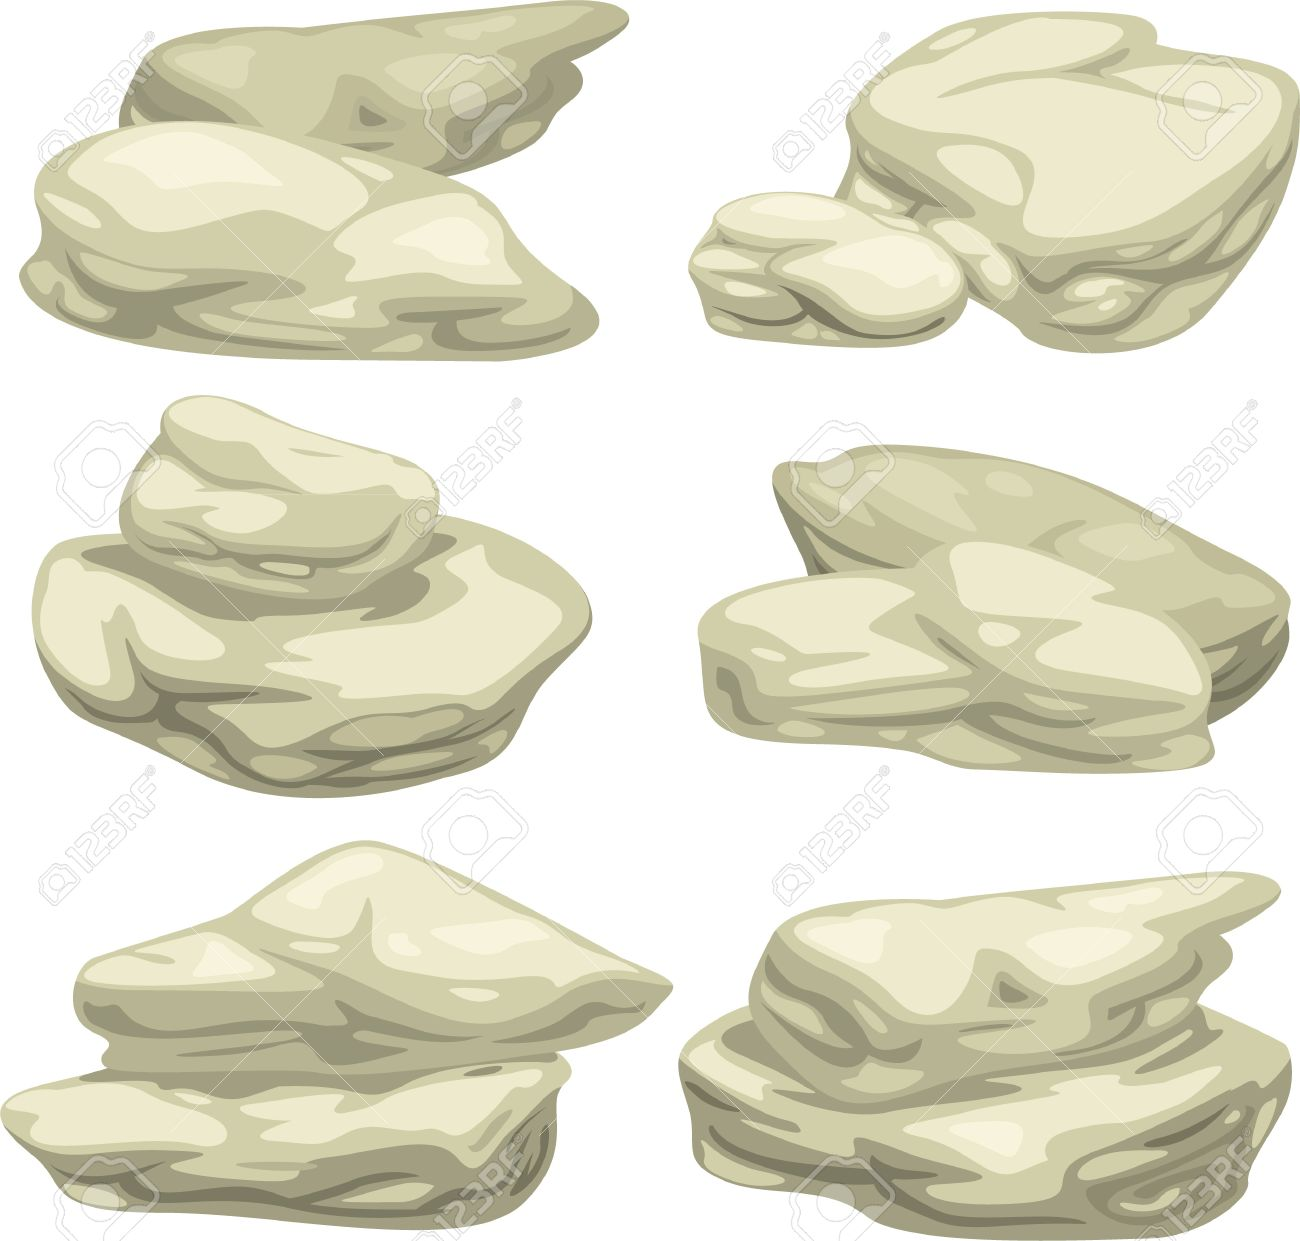 Illustration Stone Object Set Royalty Free Cliparts, Vectors, And.